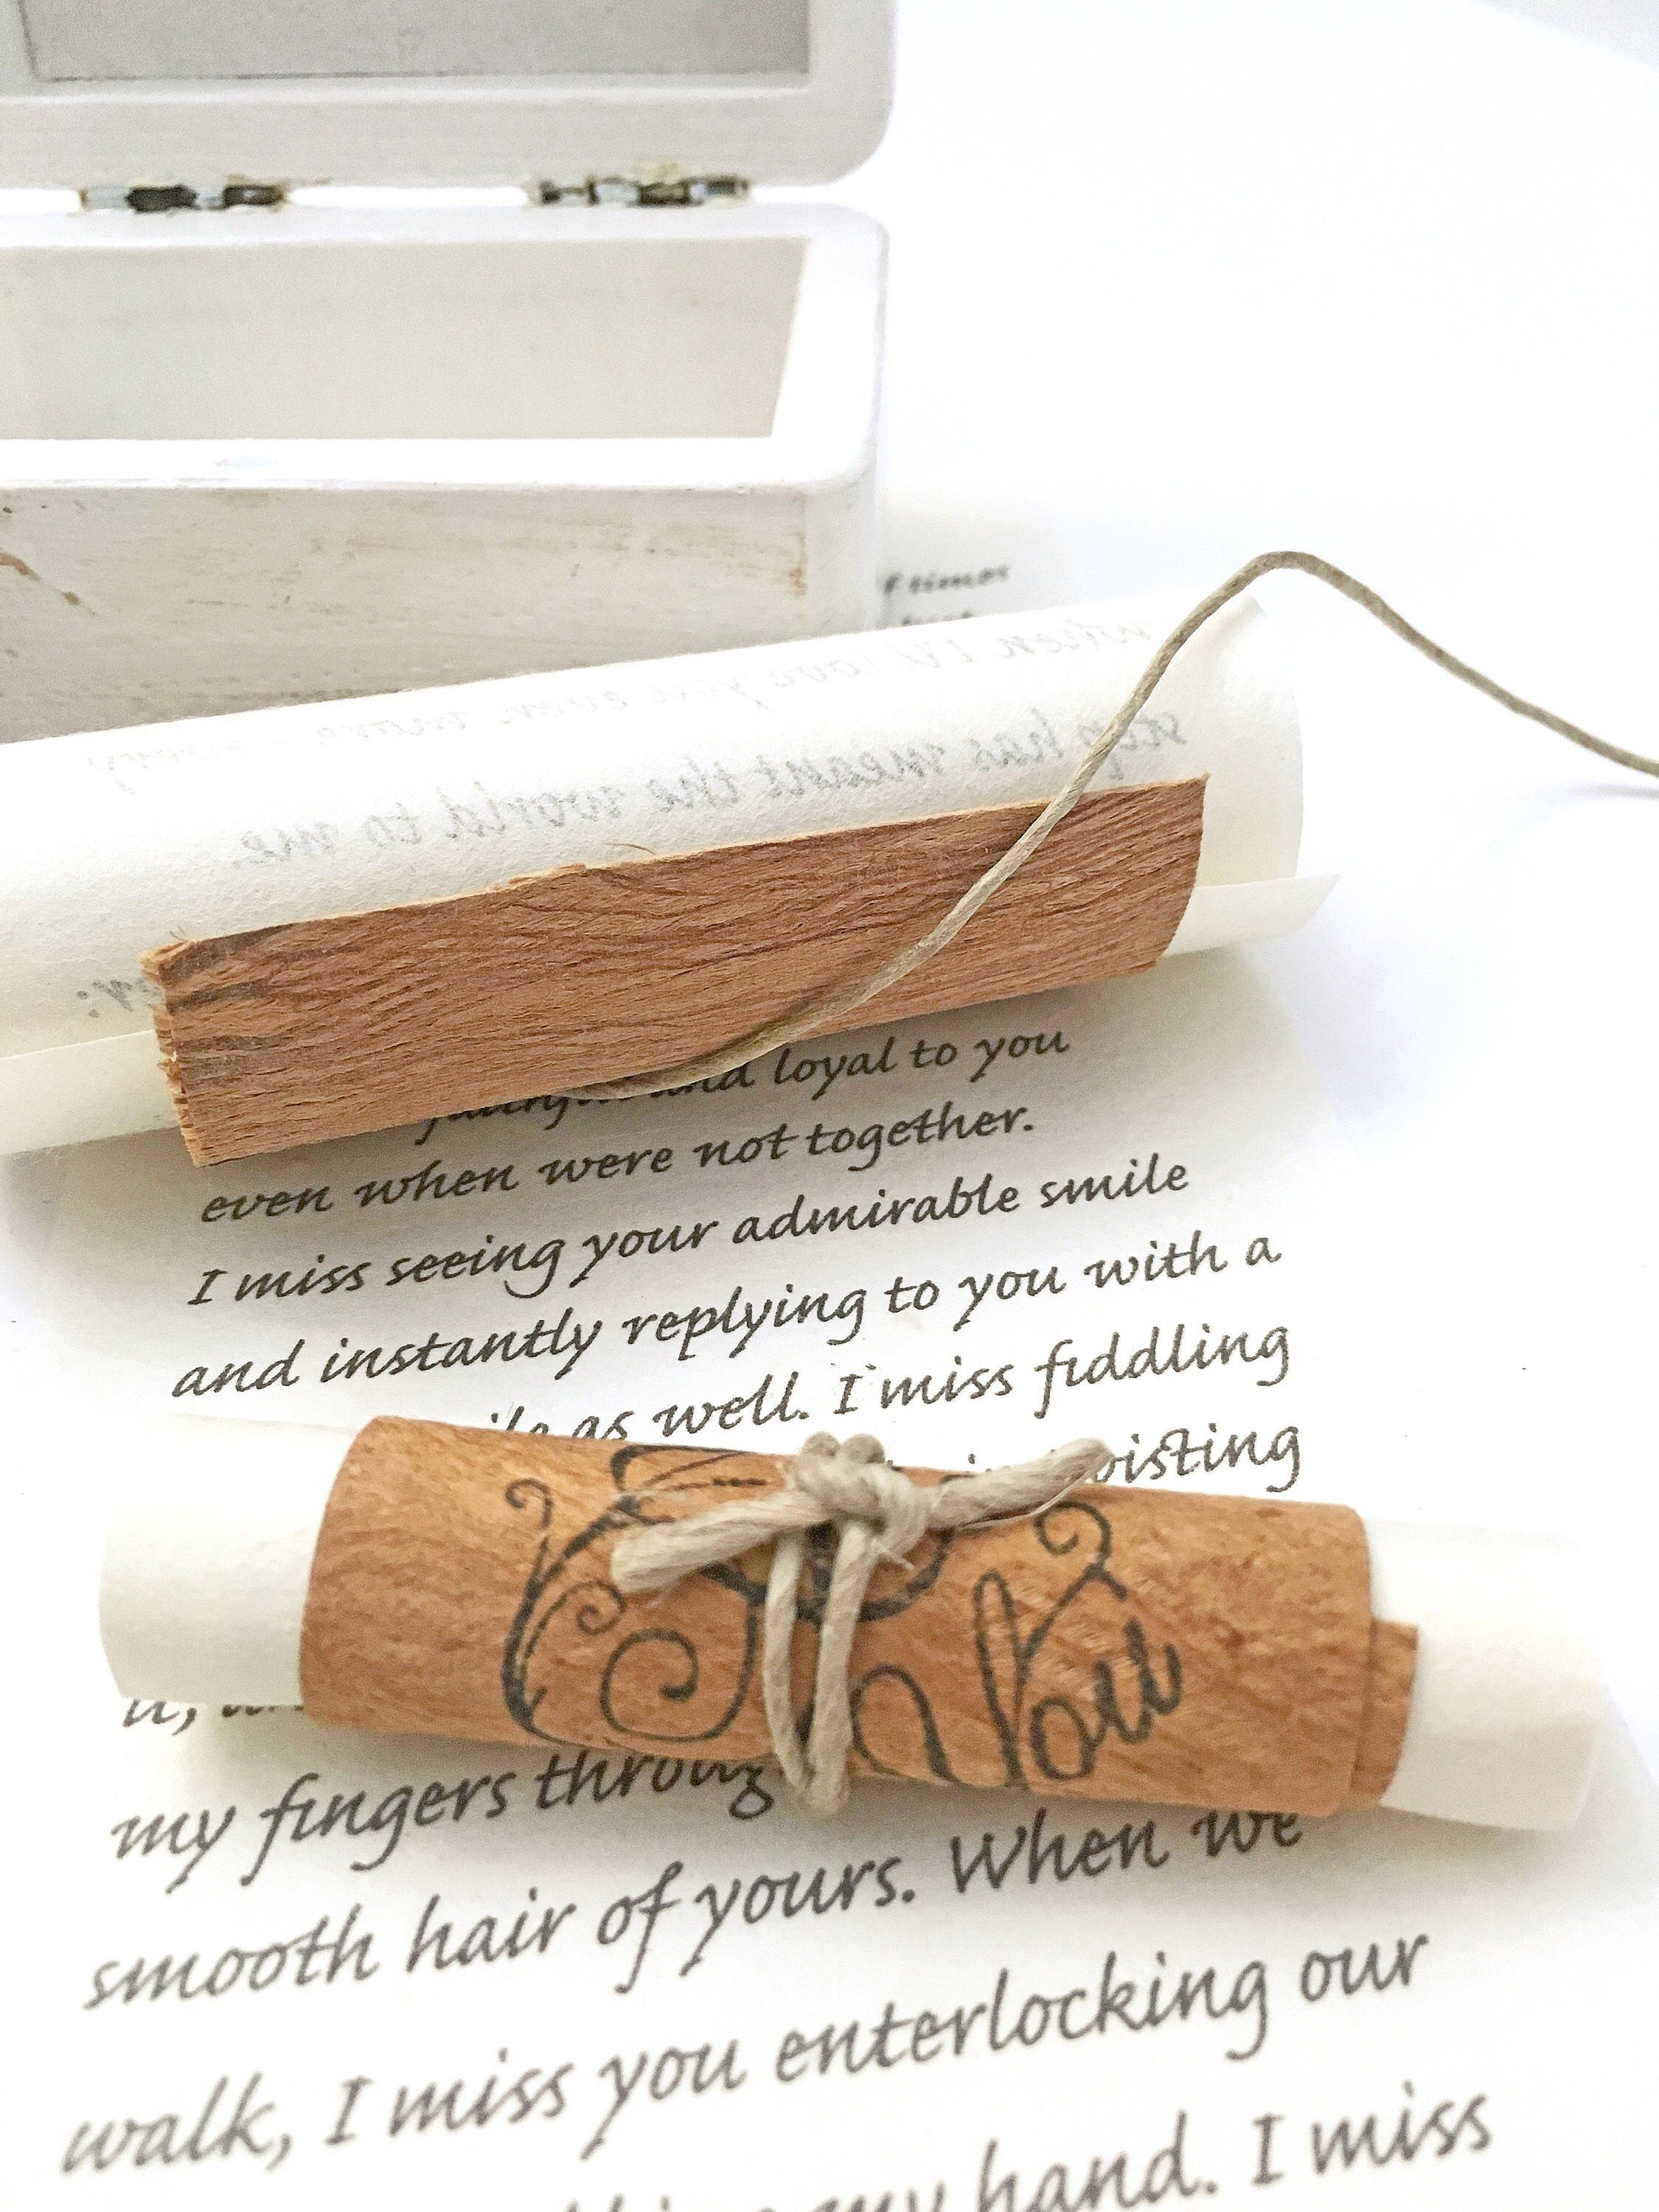 5th wedding anniversary gift for wife, OOAK wood necklace